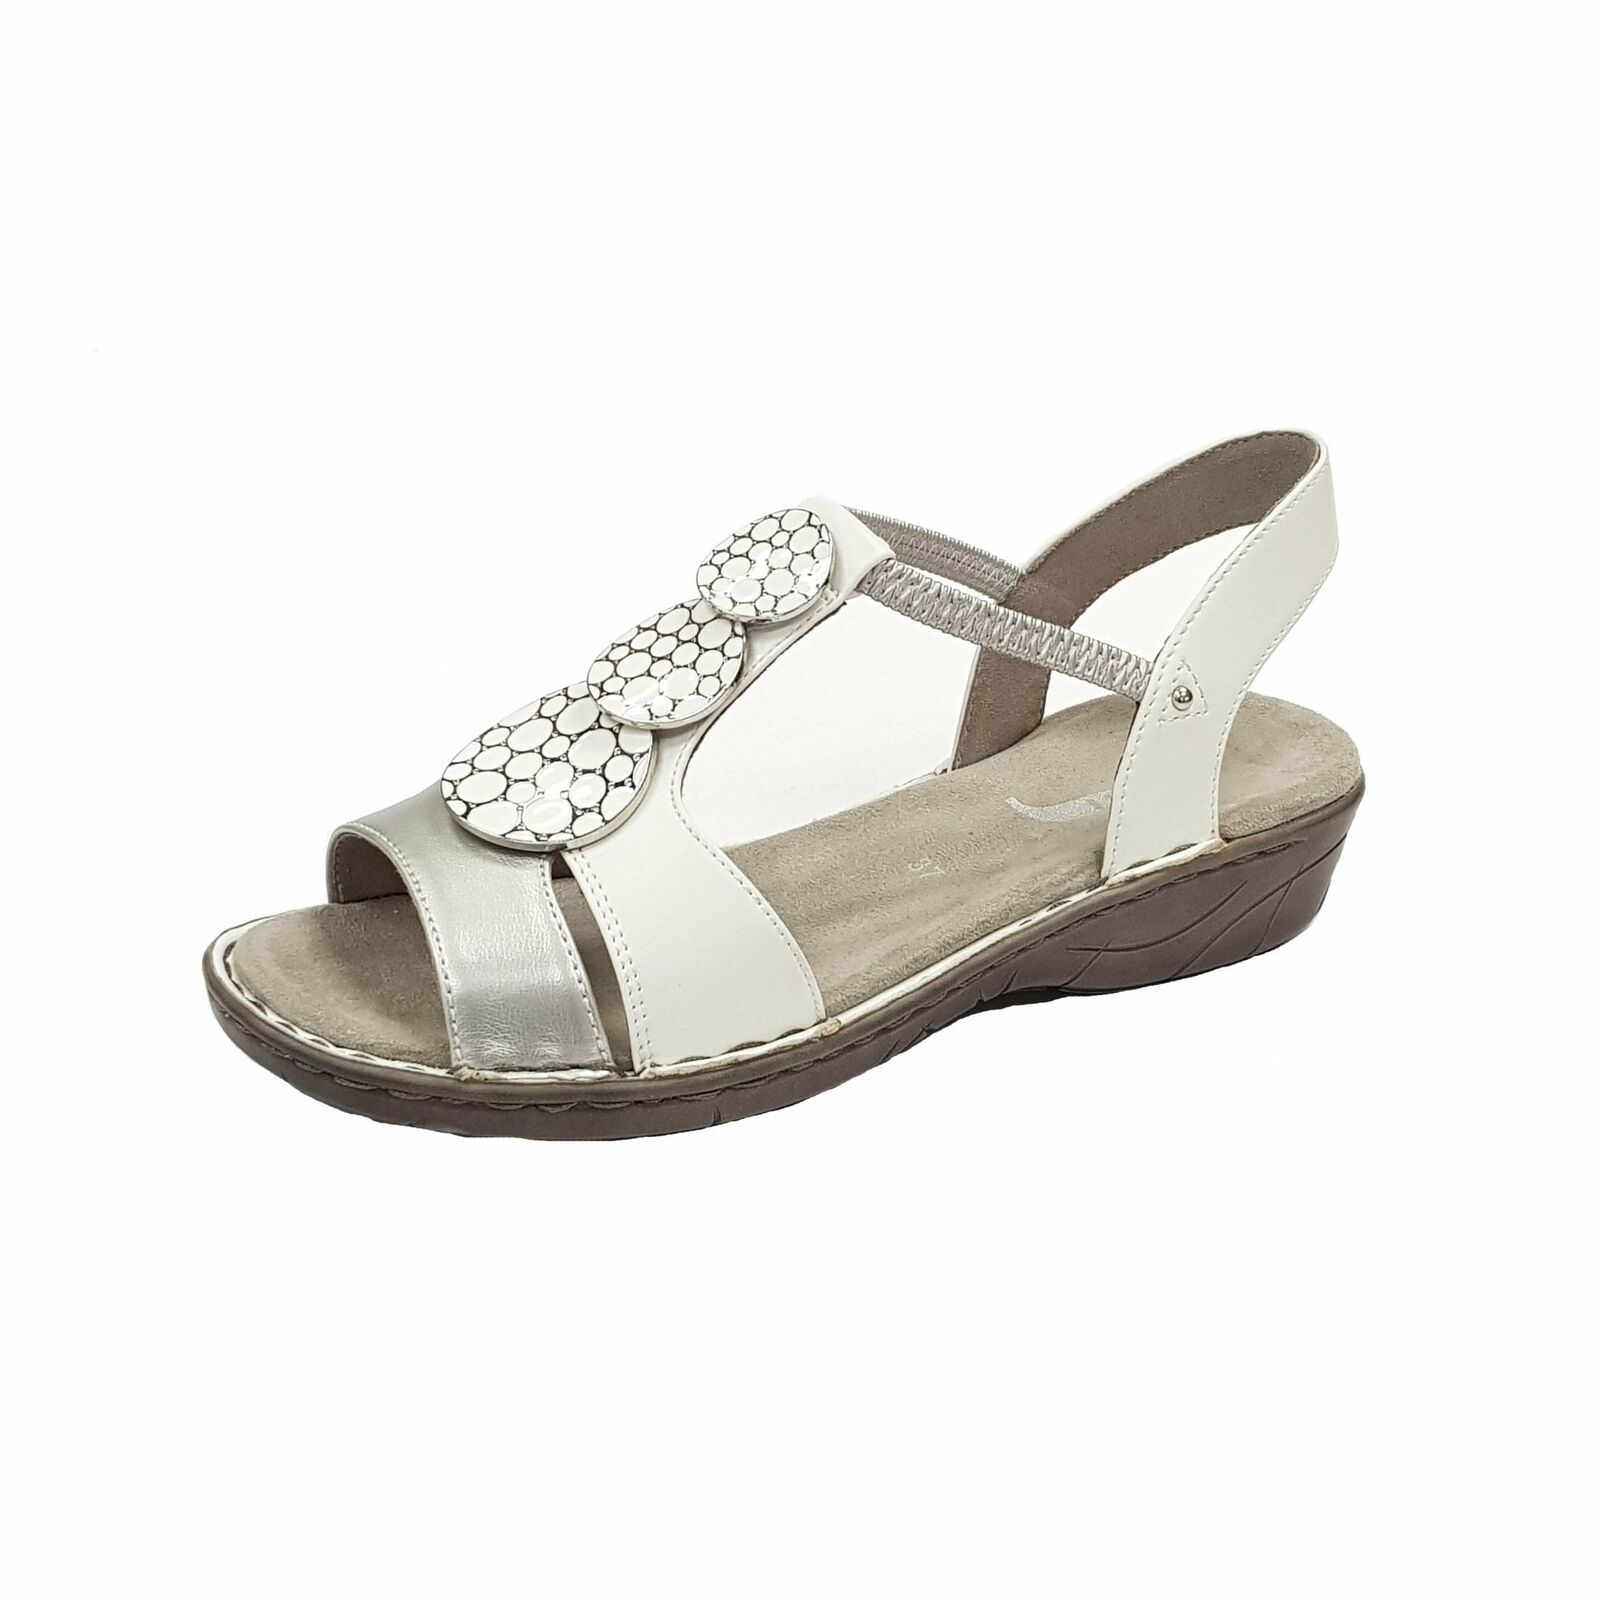 Jenny 57287-73 White   Metallic Sandal with Elasticated Straps